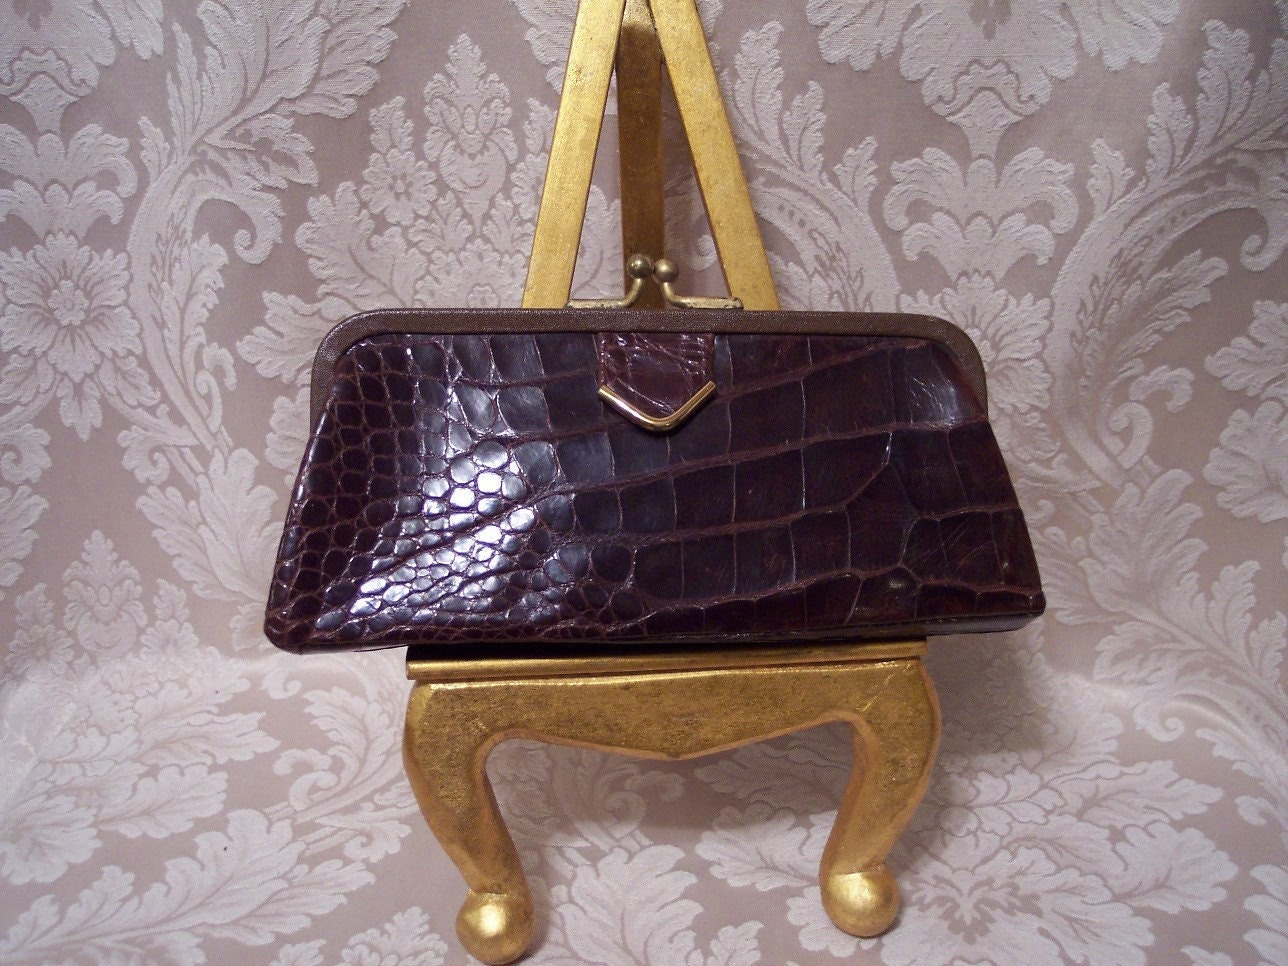 Vintage Alligator Wallet Clutch